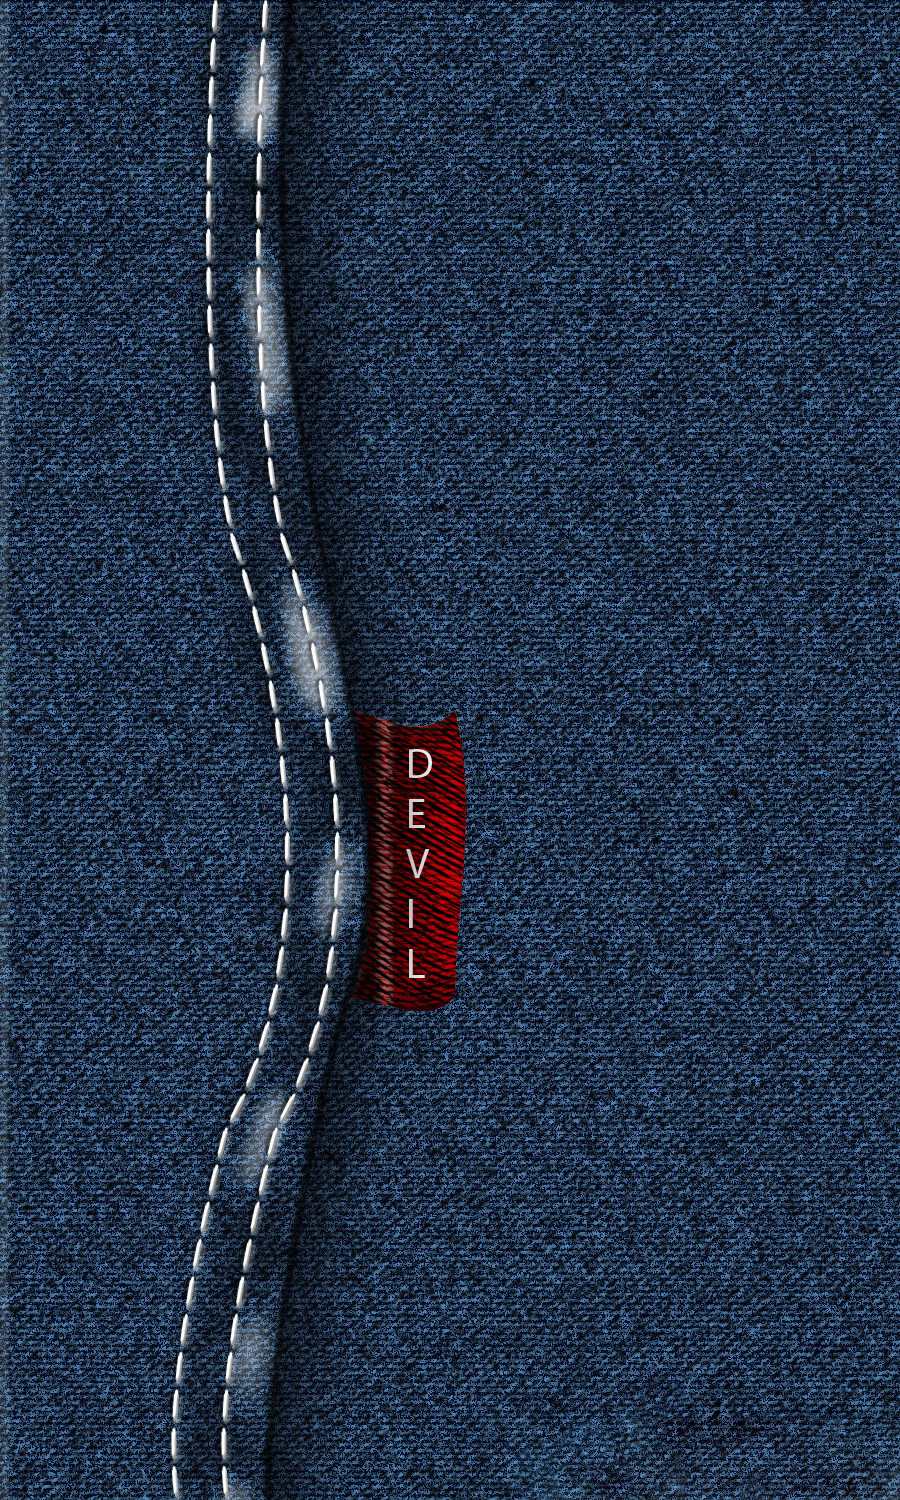 texture jeans cloth, download photo, background, jeans, , jeans DEVIL texture, background